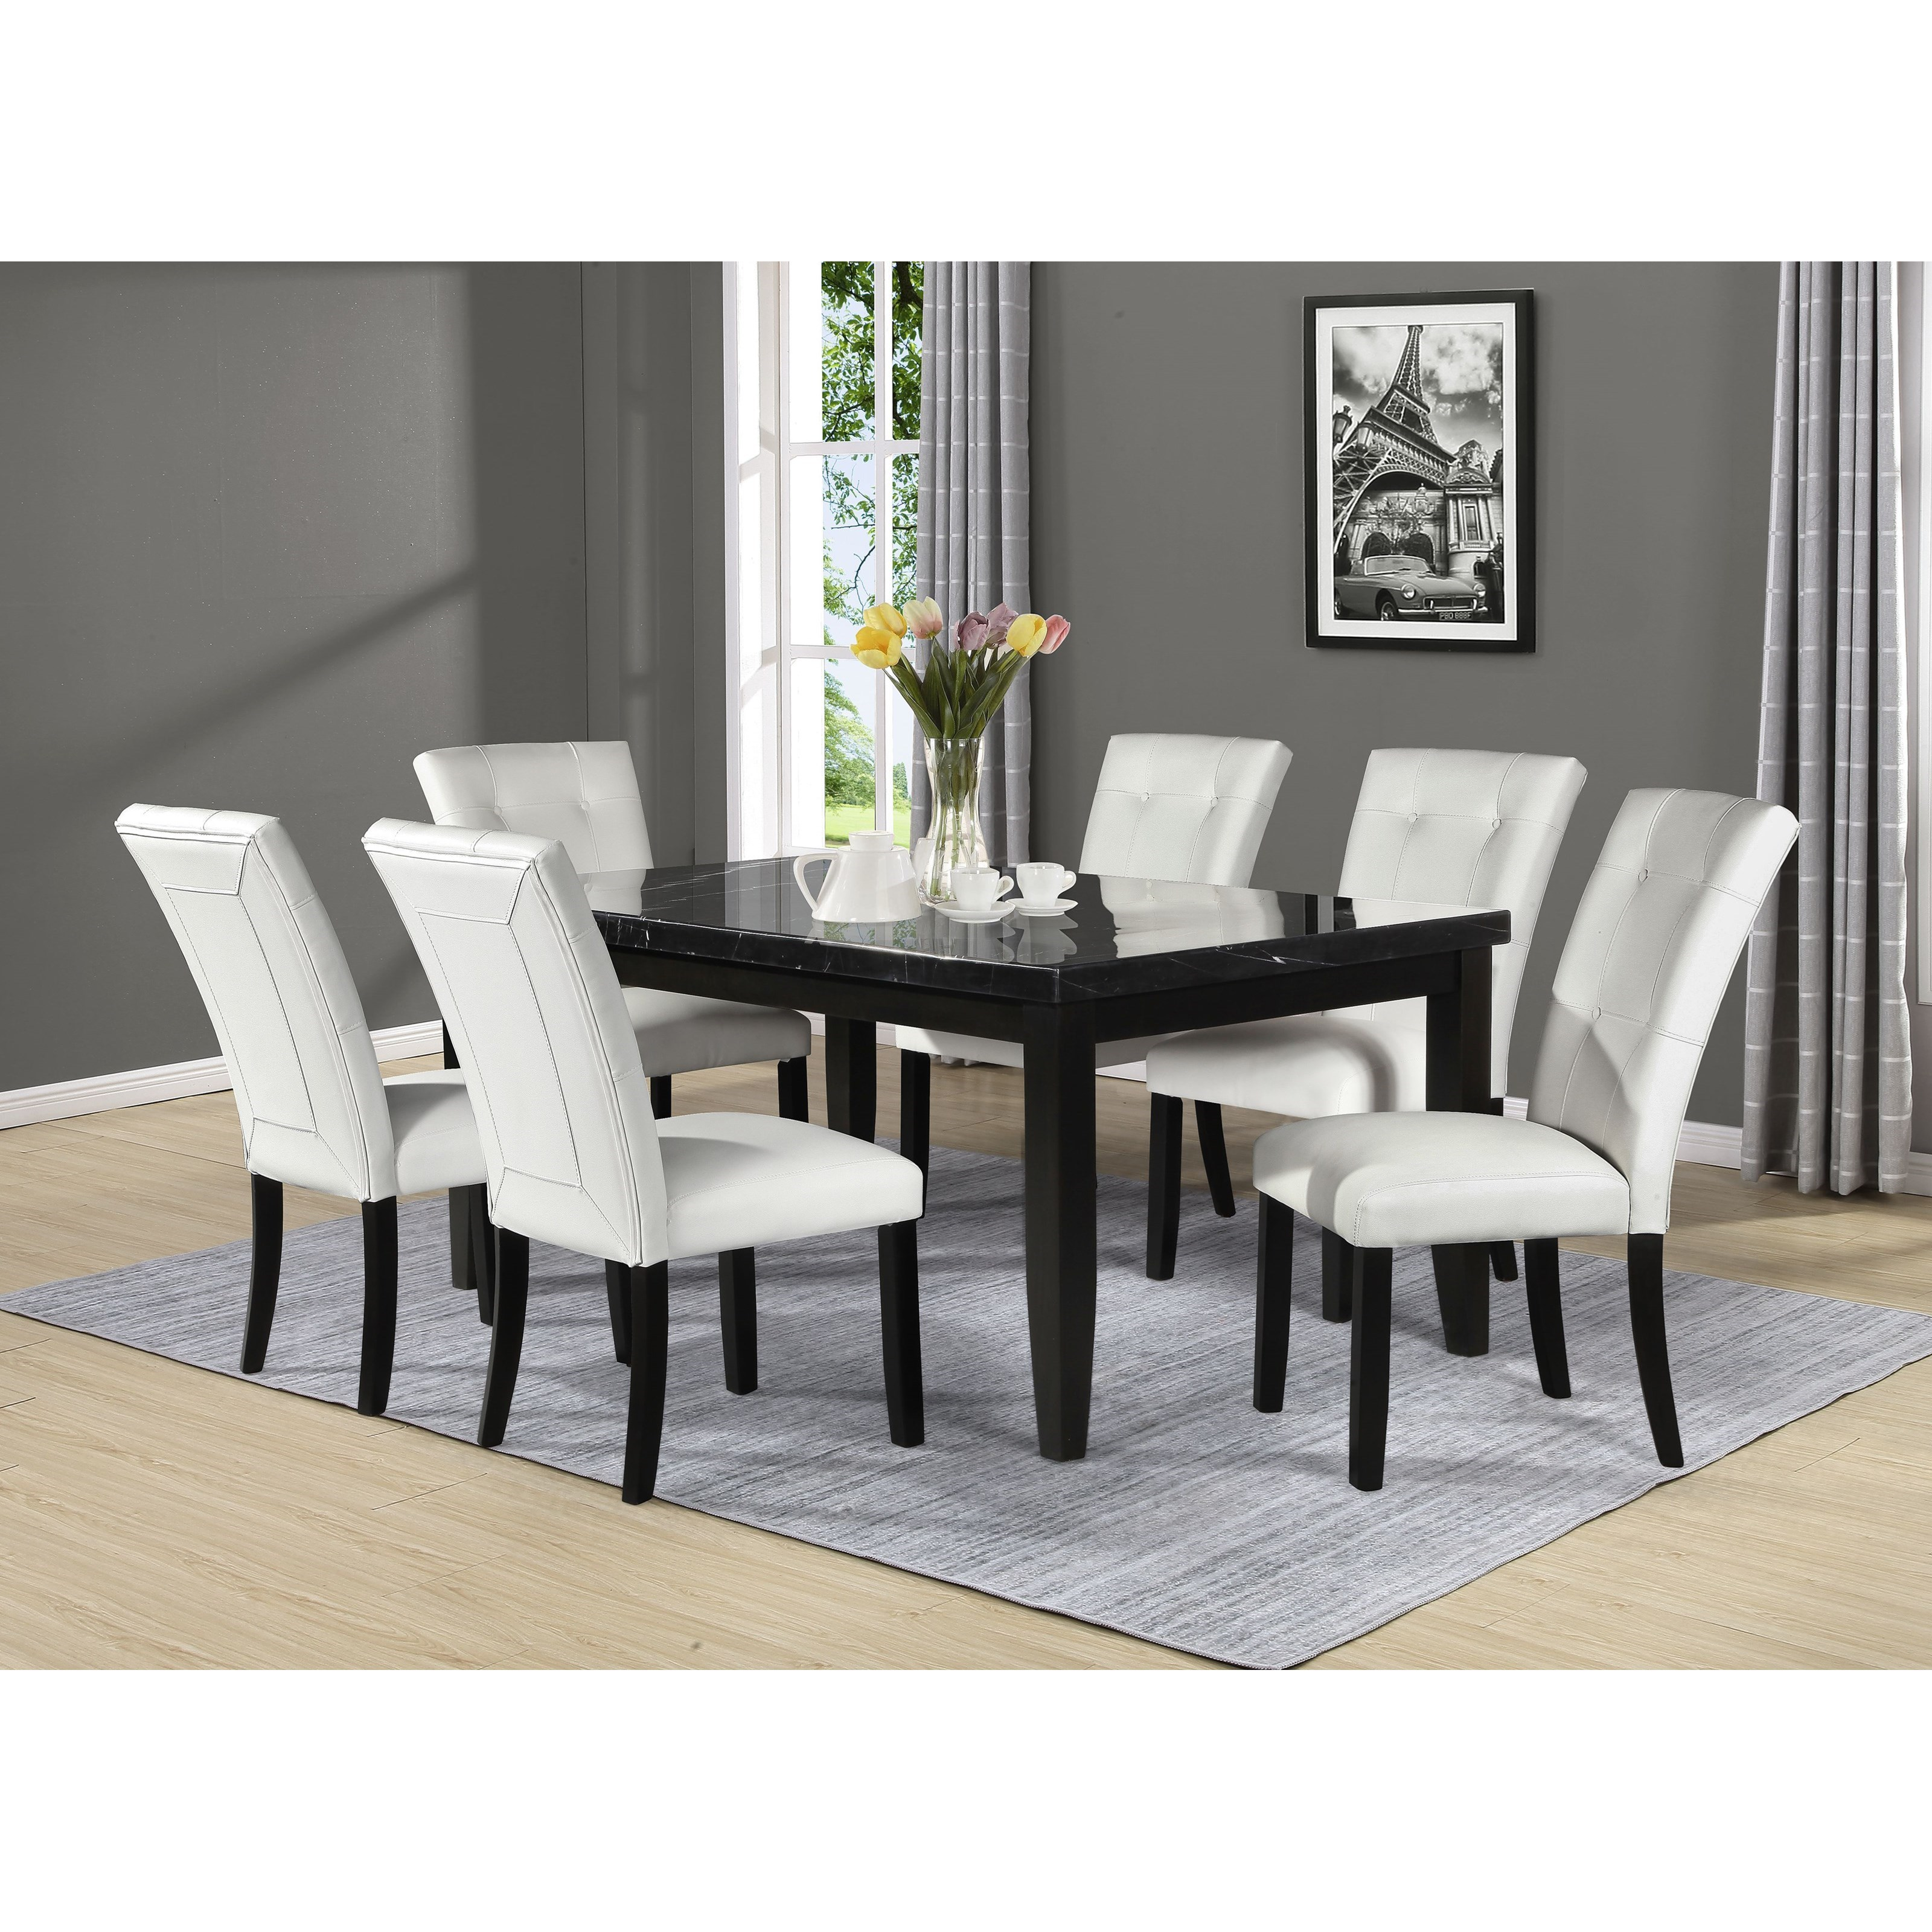 Markina 7-Piece Rectangular Table and Chair Set by Steve Silver at Northeast Factory Direct